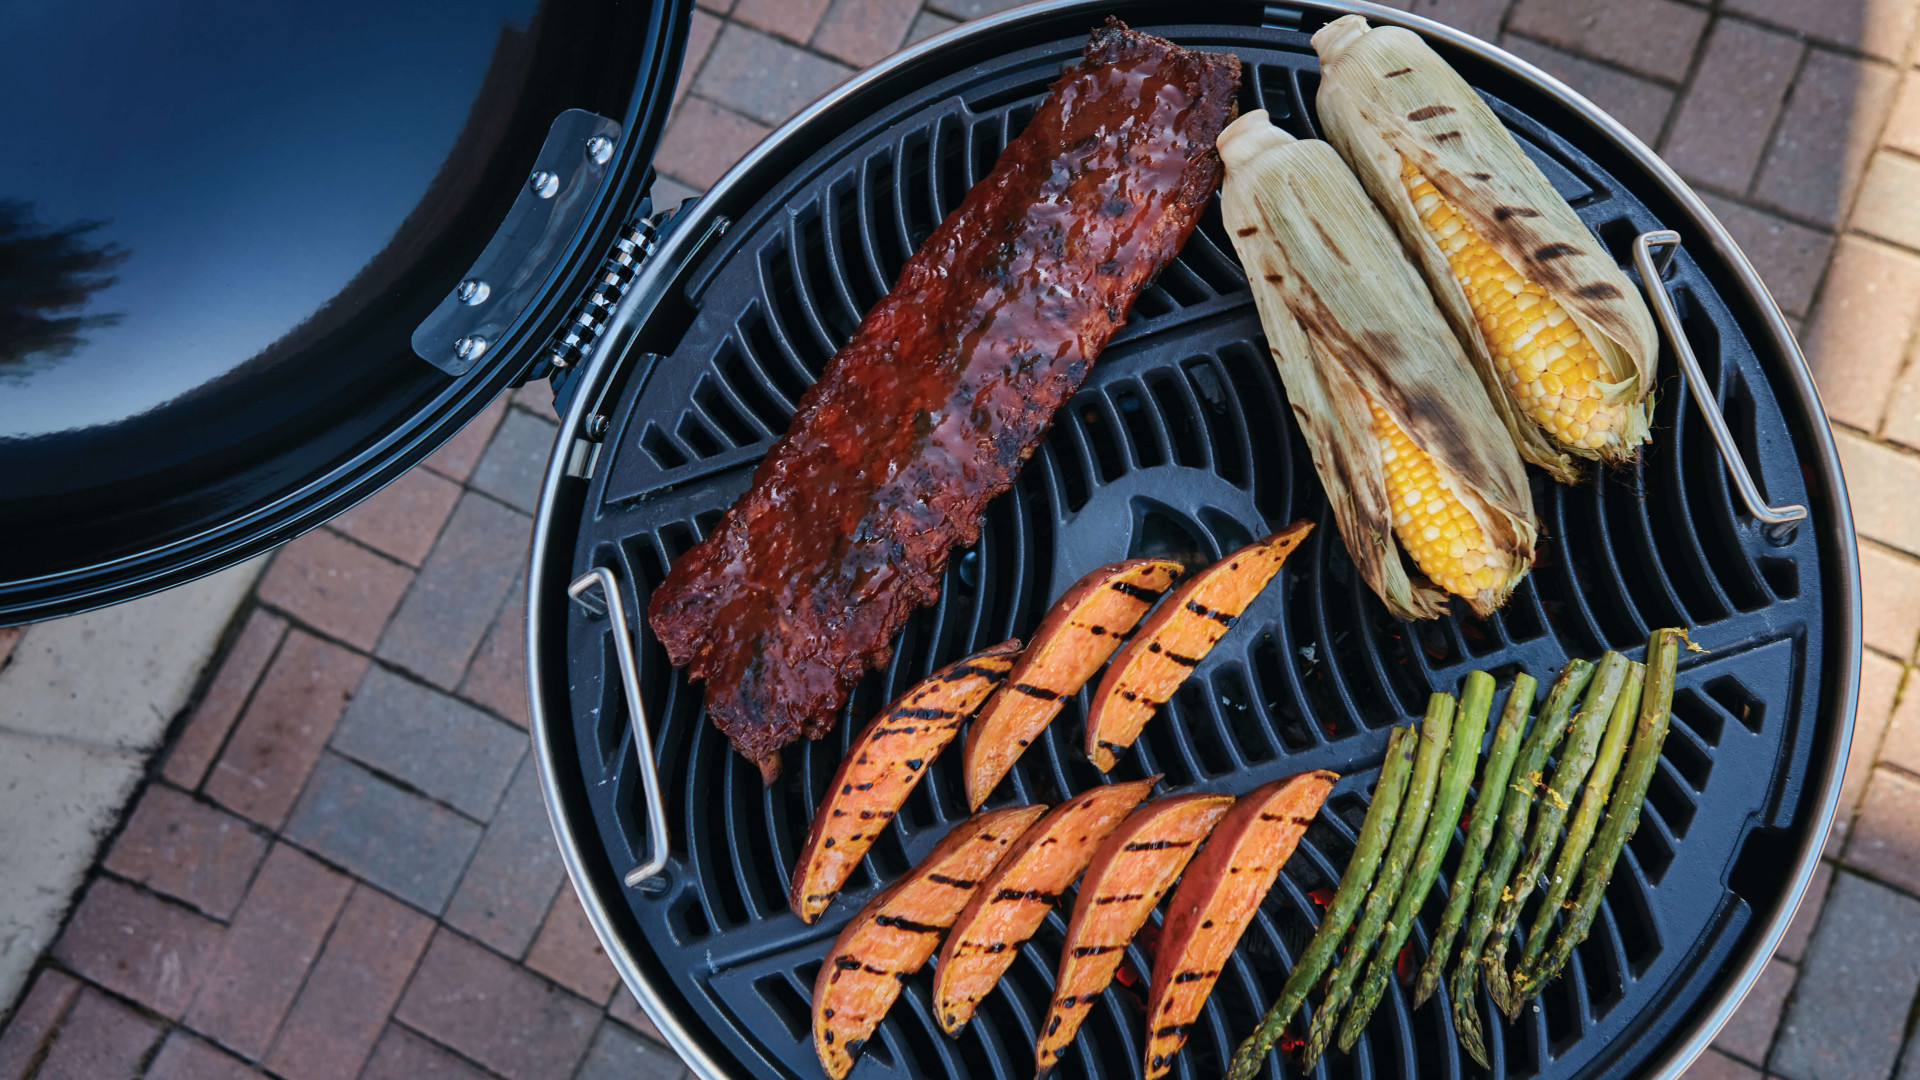 Napoleon Pro Charcoal Grill barbecue review